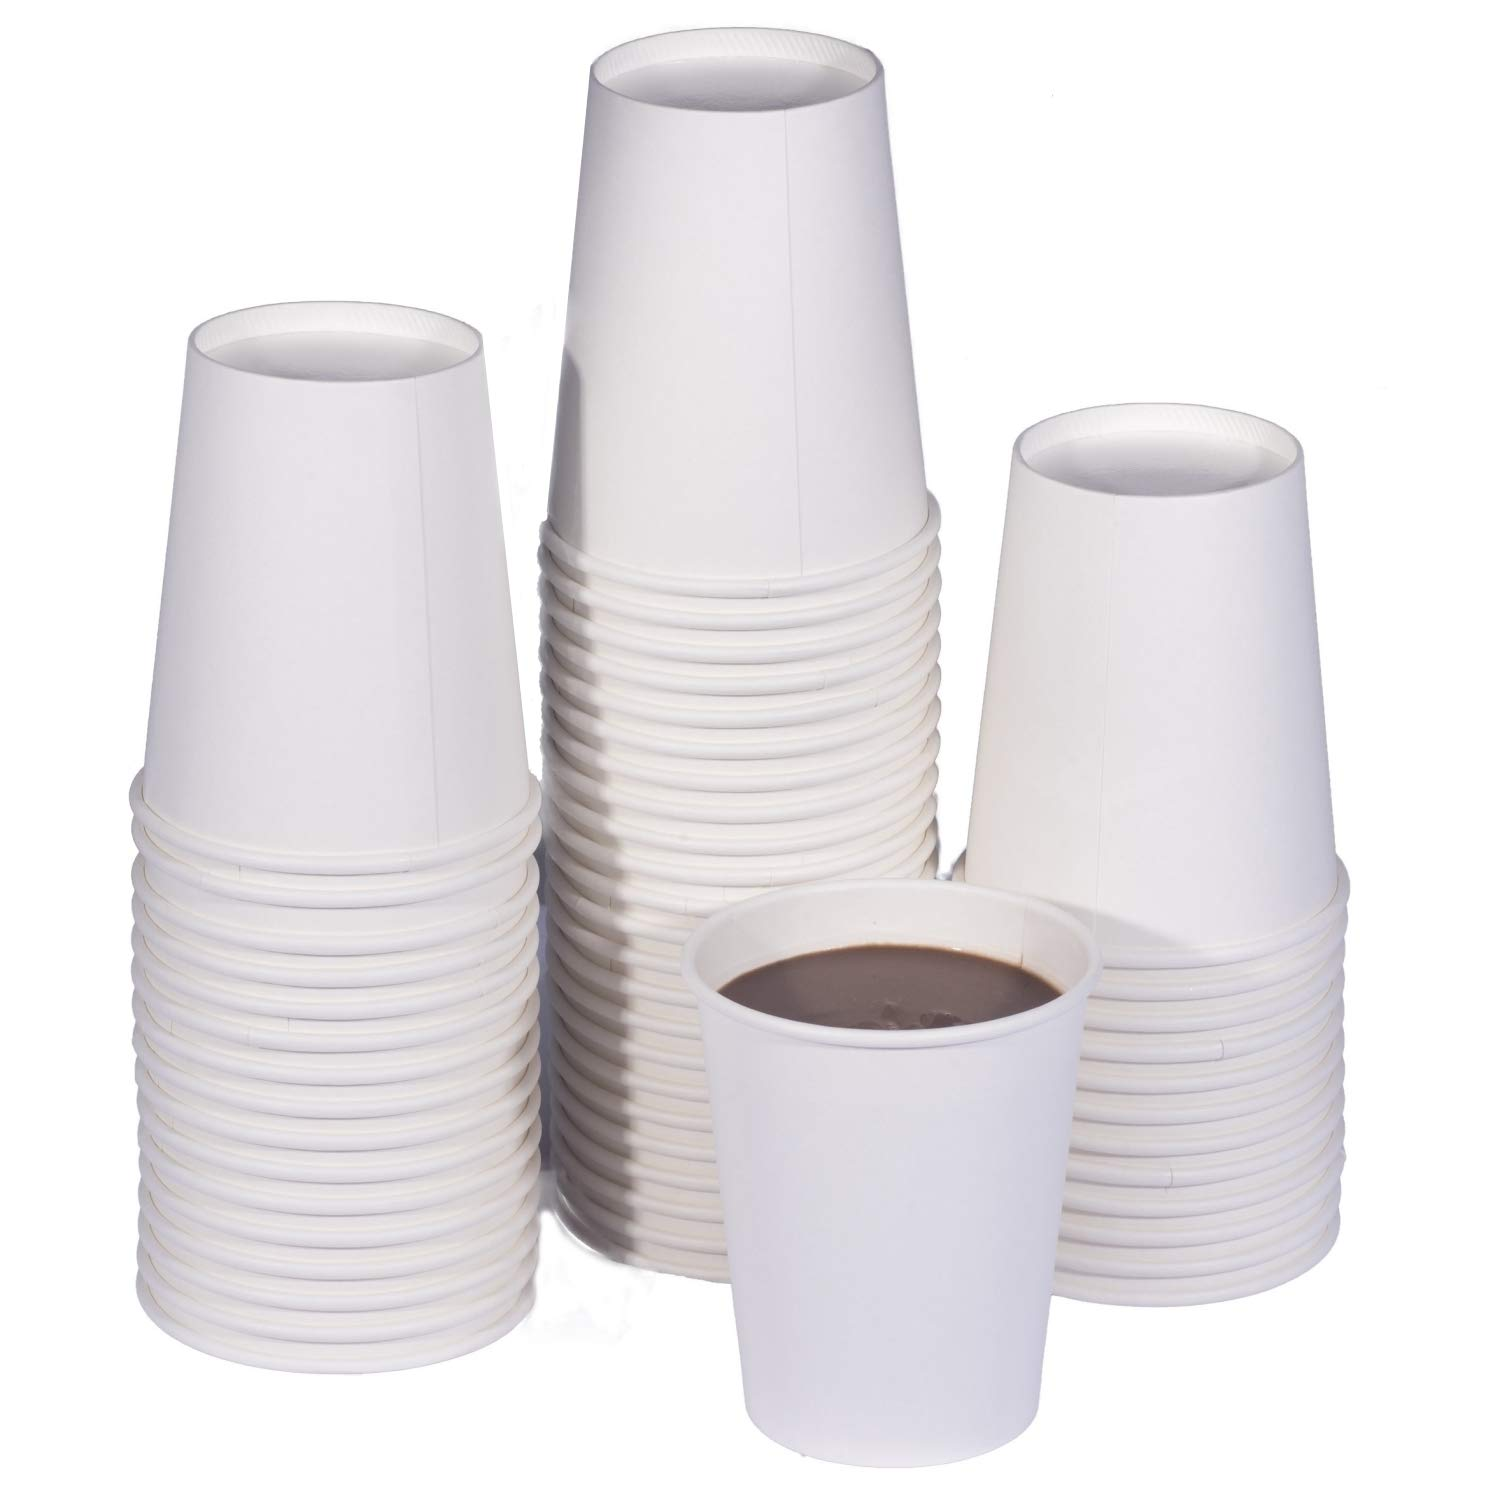 TashiBox 8 oz White Hot Drink Paper Cups - 150 Count - Coffee, Tea, Hot Cocoa